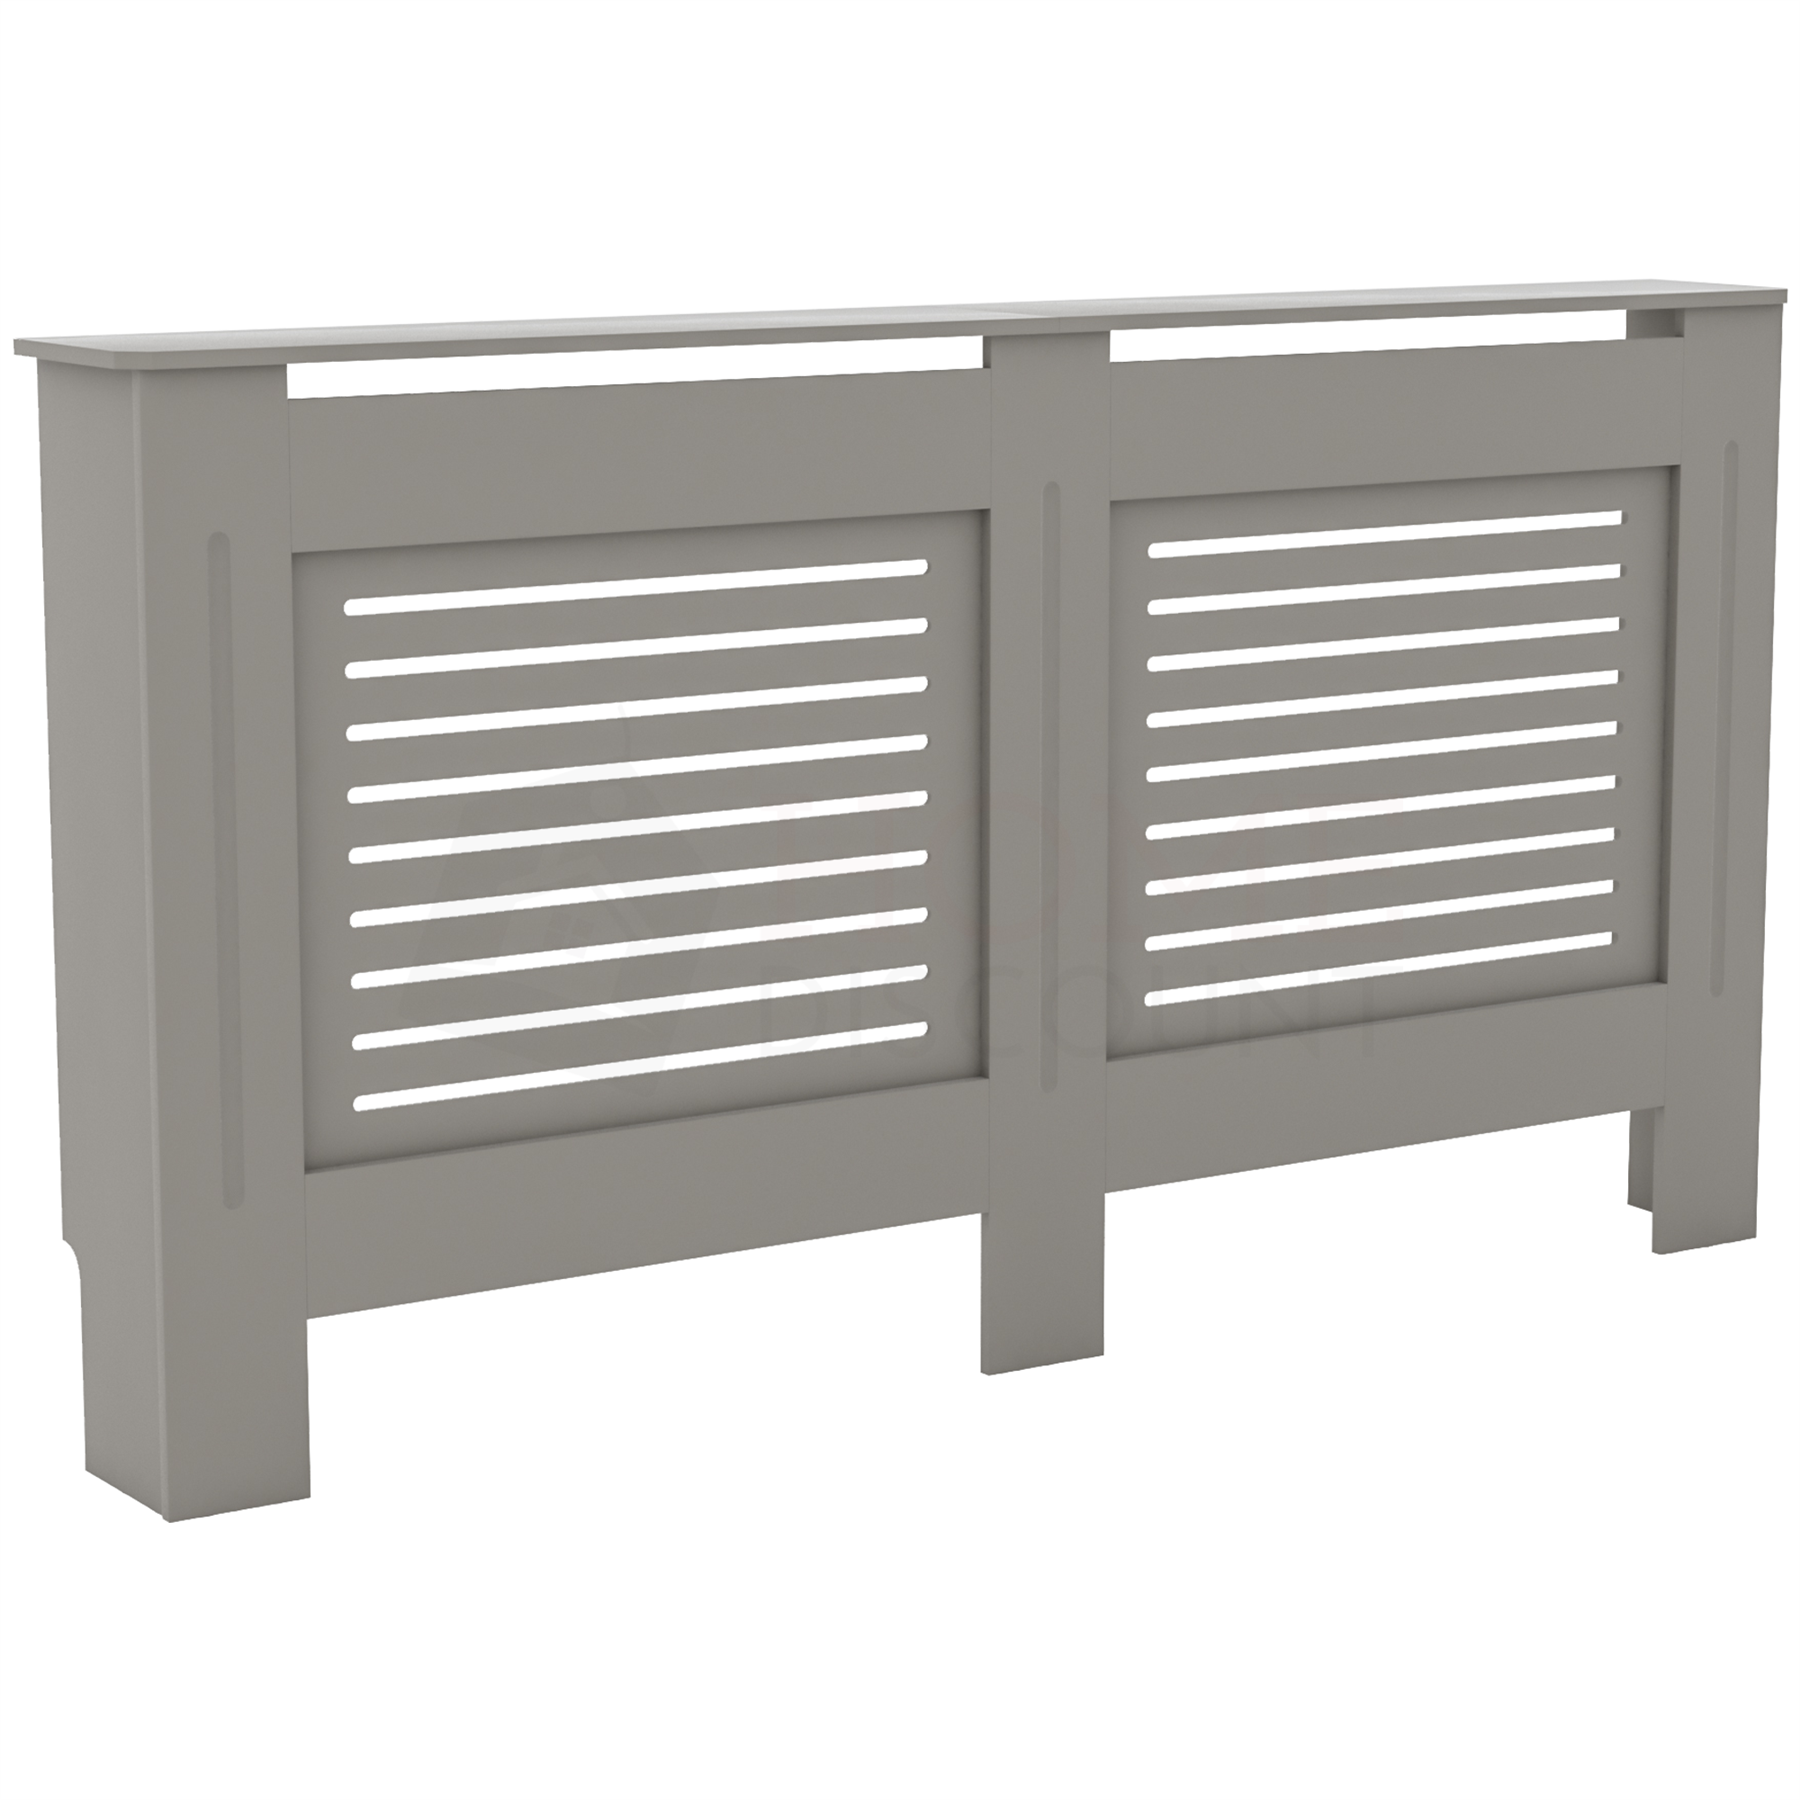 thumbnail 161 - Radiator Cover White Unfinished Modern Traditional Wood Grill Cabinet Furniture